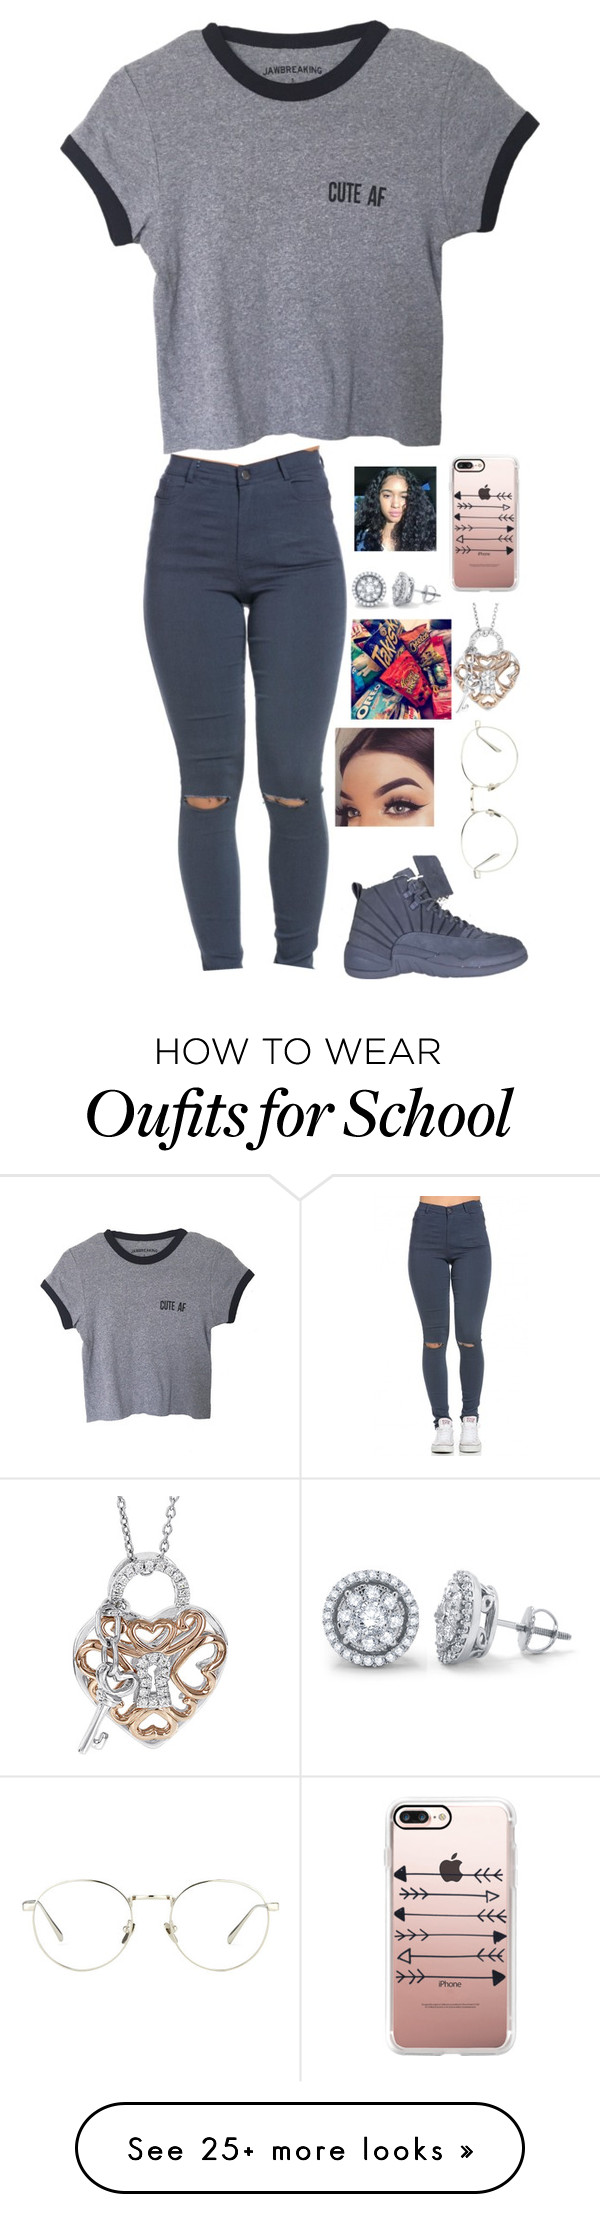 """""""Rambo"""" by swaggyrl on Polyvore featuring Casetify, DIVINA, H Star and Linda Farrow"""